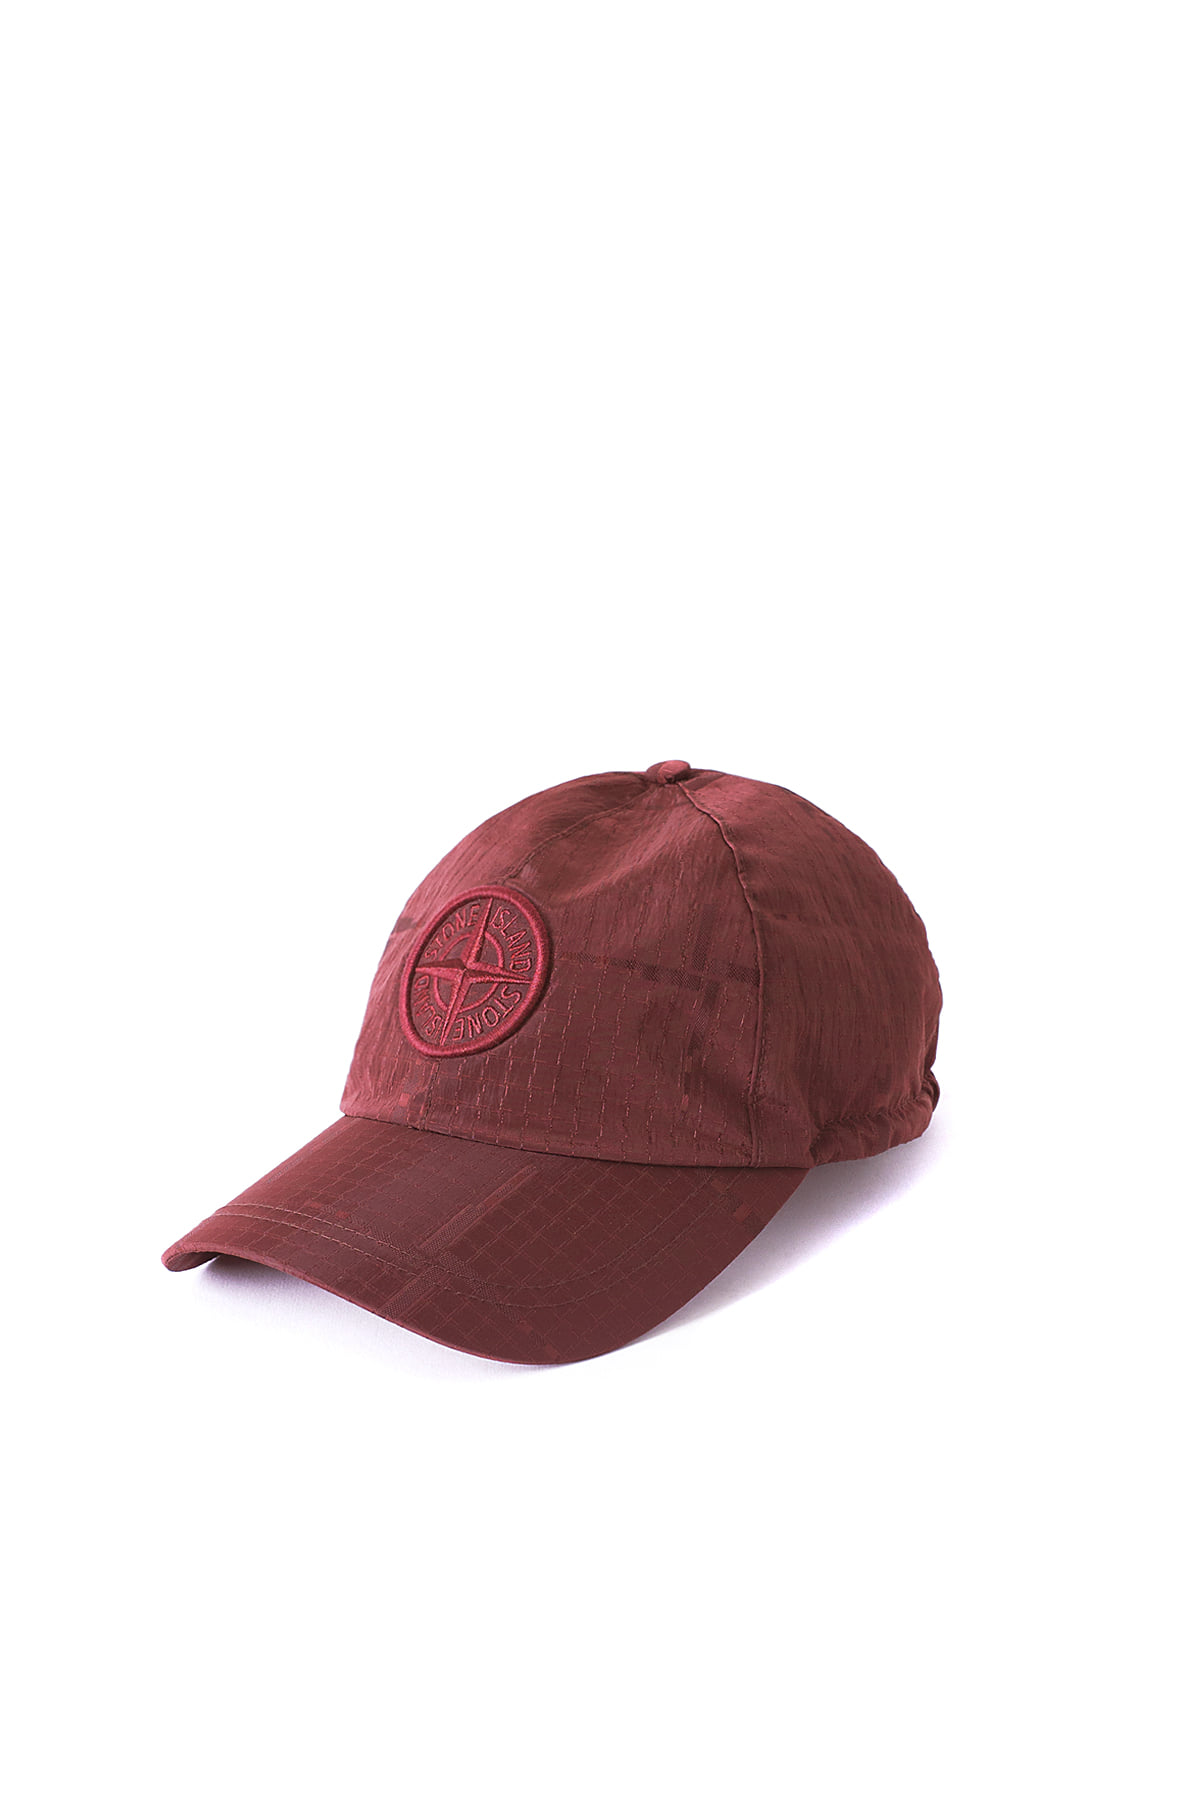 Stone Island : SI HOUSE CHECK JACQUARD ON NYLON METAL CAP (Burgundy)